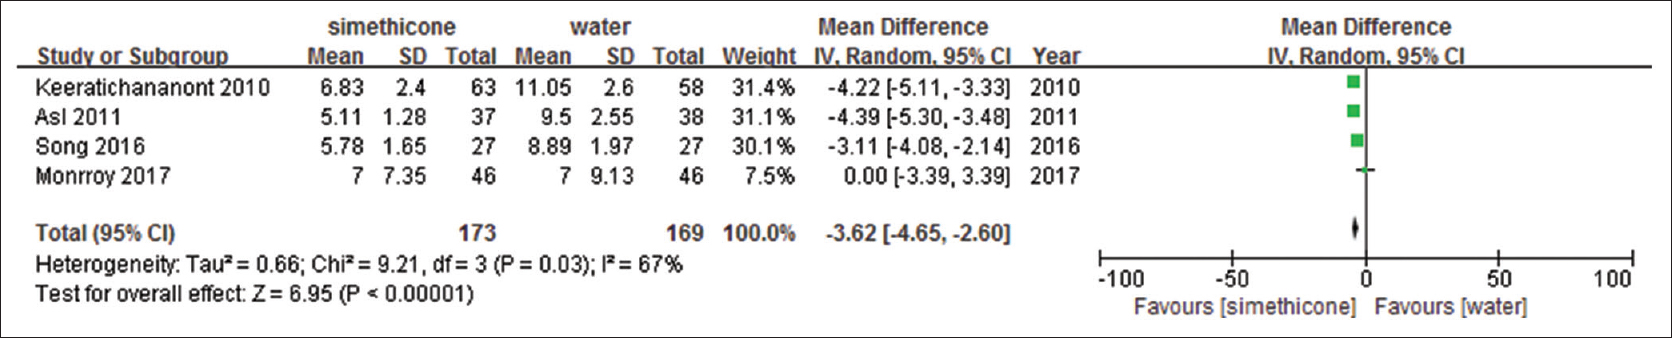 Figure 5: Total mucosal visibility score (simethicone vs water)